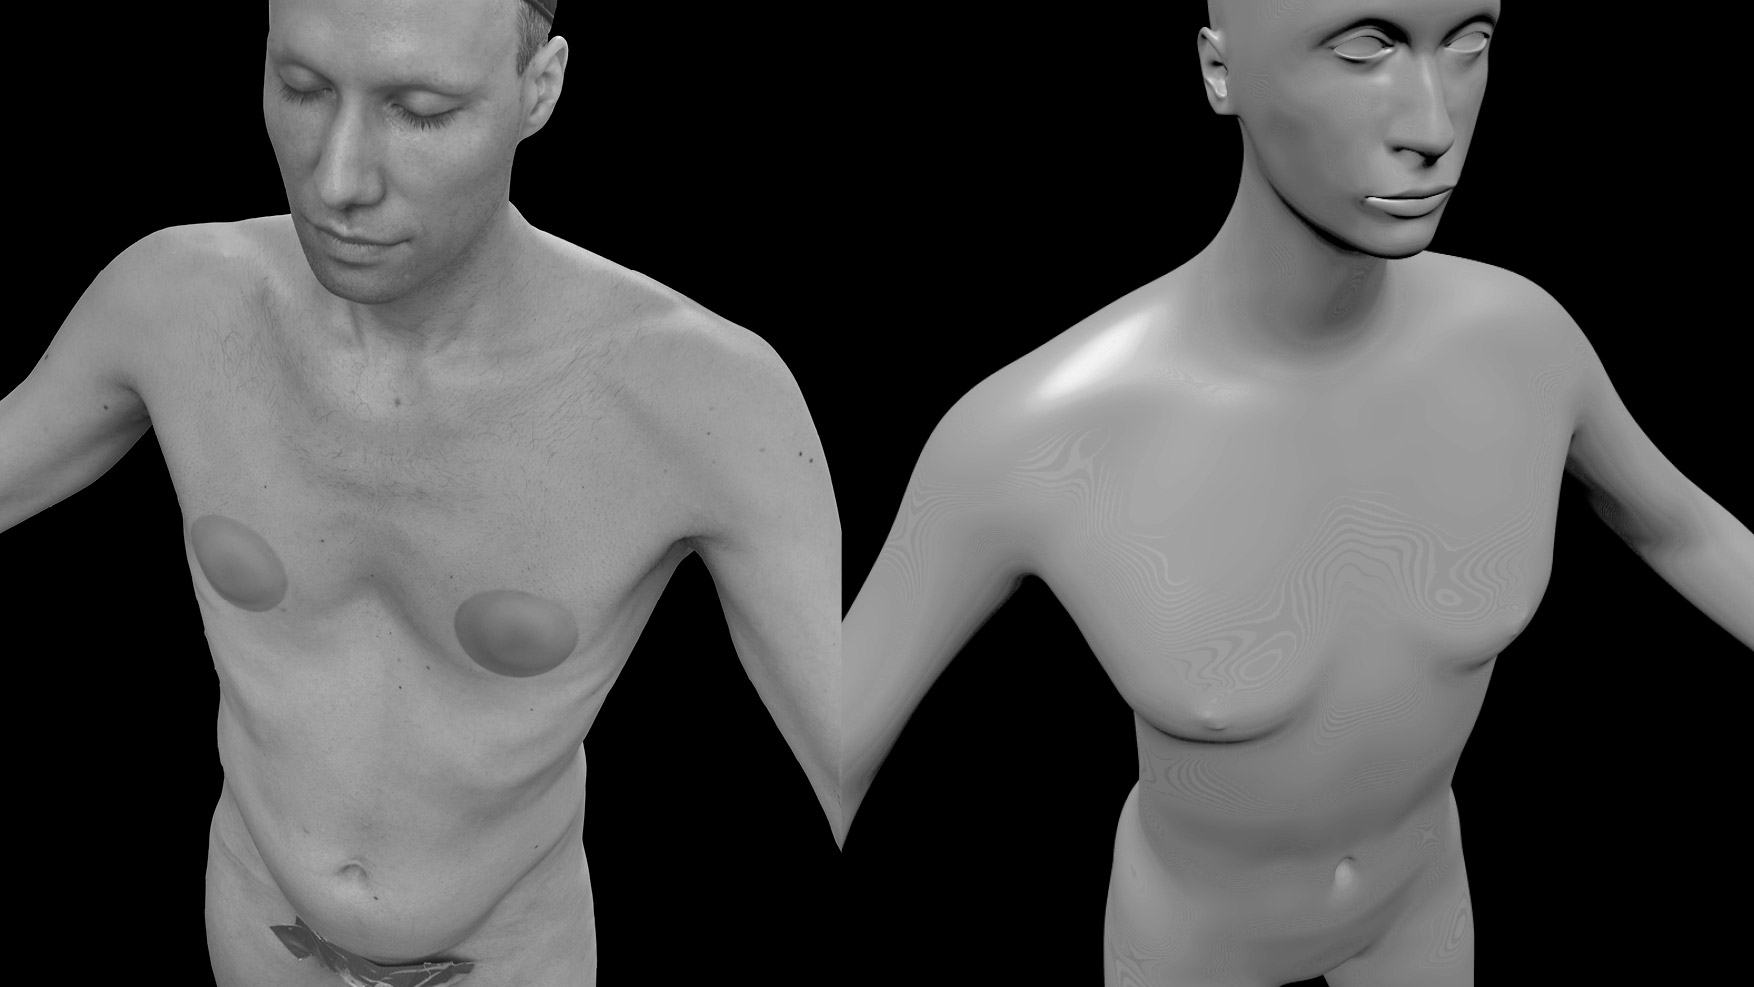 A black and white image with, on the left a photograph of a person and on the right a 3D avatar. The person is only wearing a few elements to hide part of their body. The image is symmetrically composed and the avatar has the same posture as the photographed person.